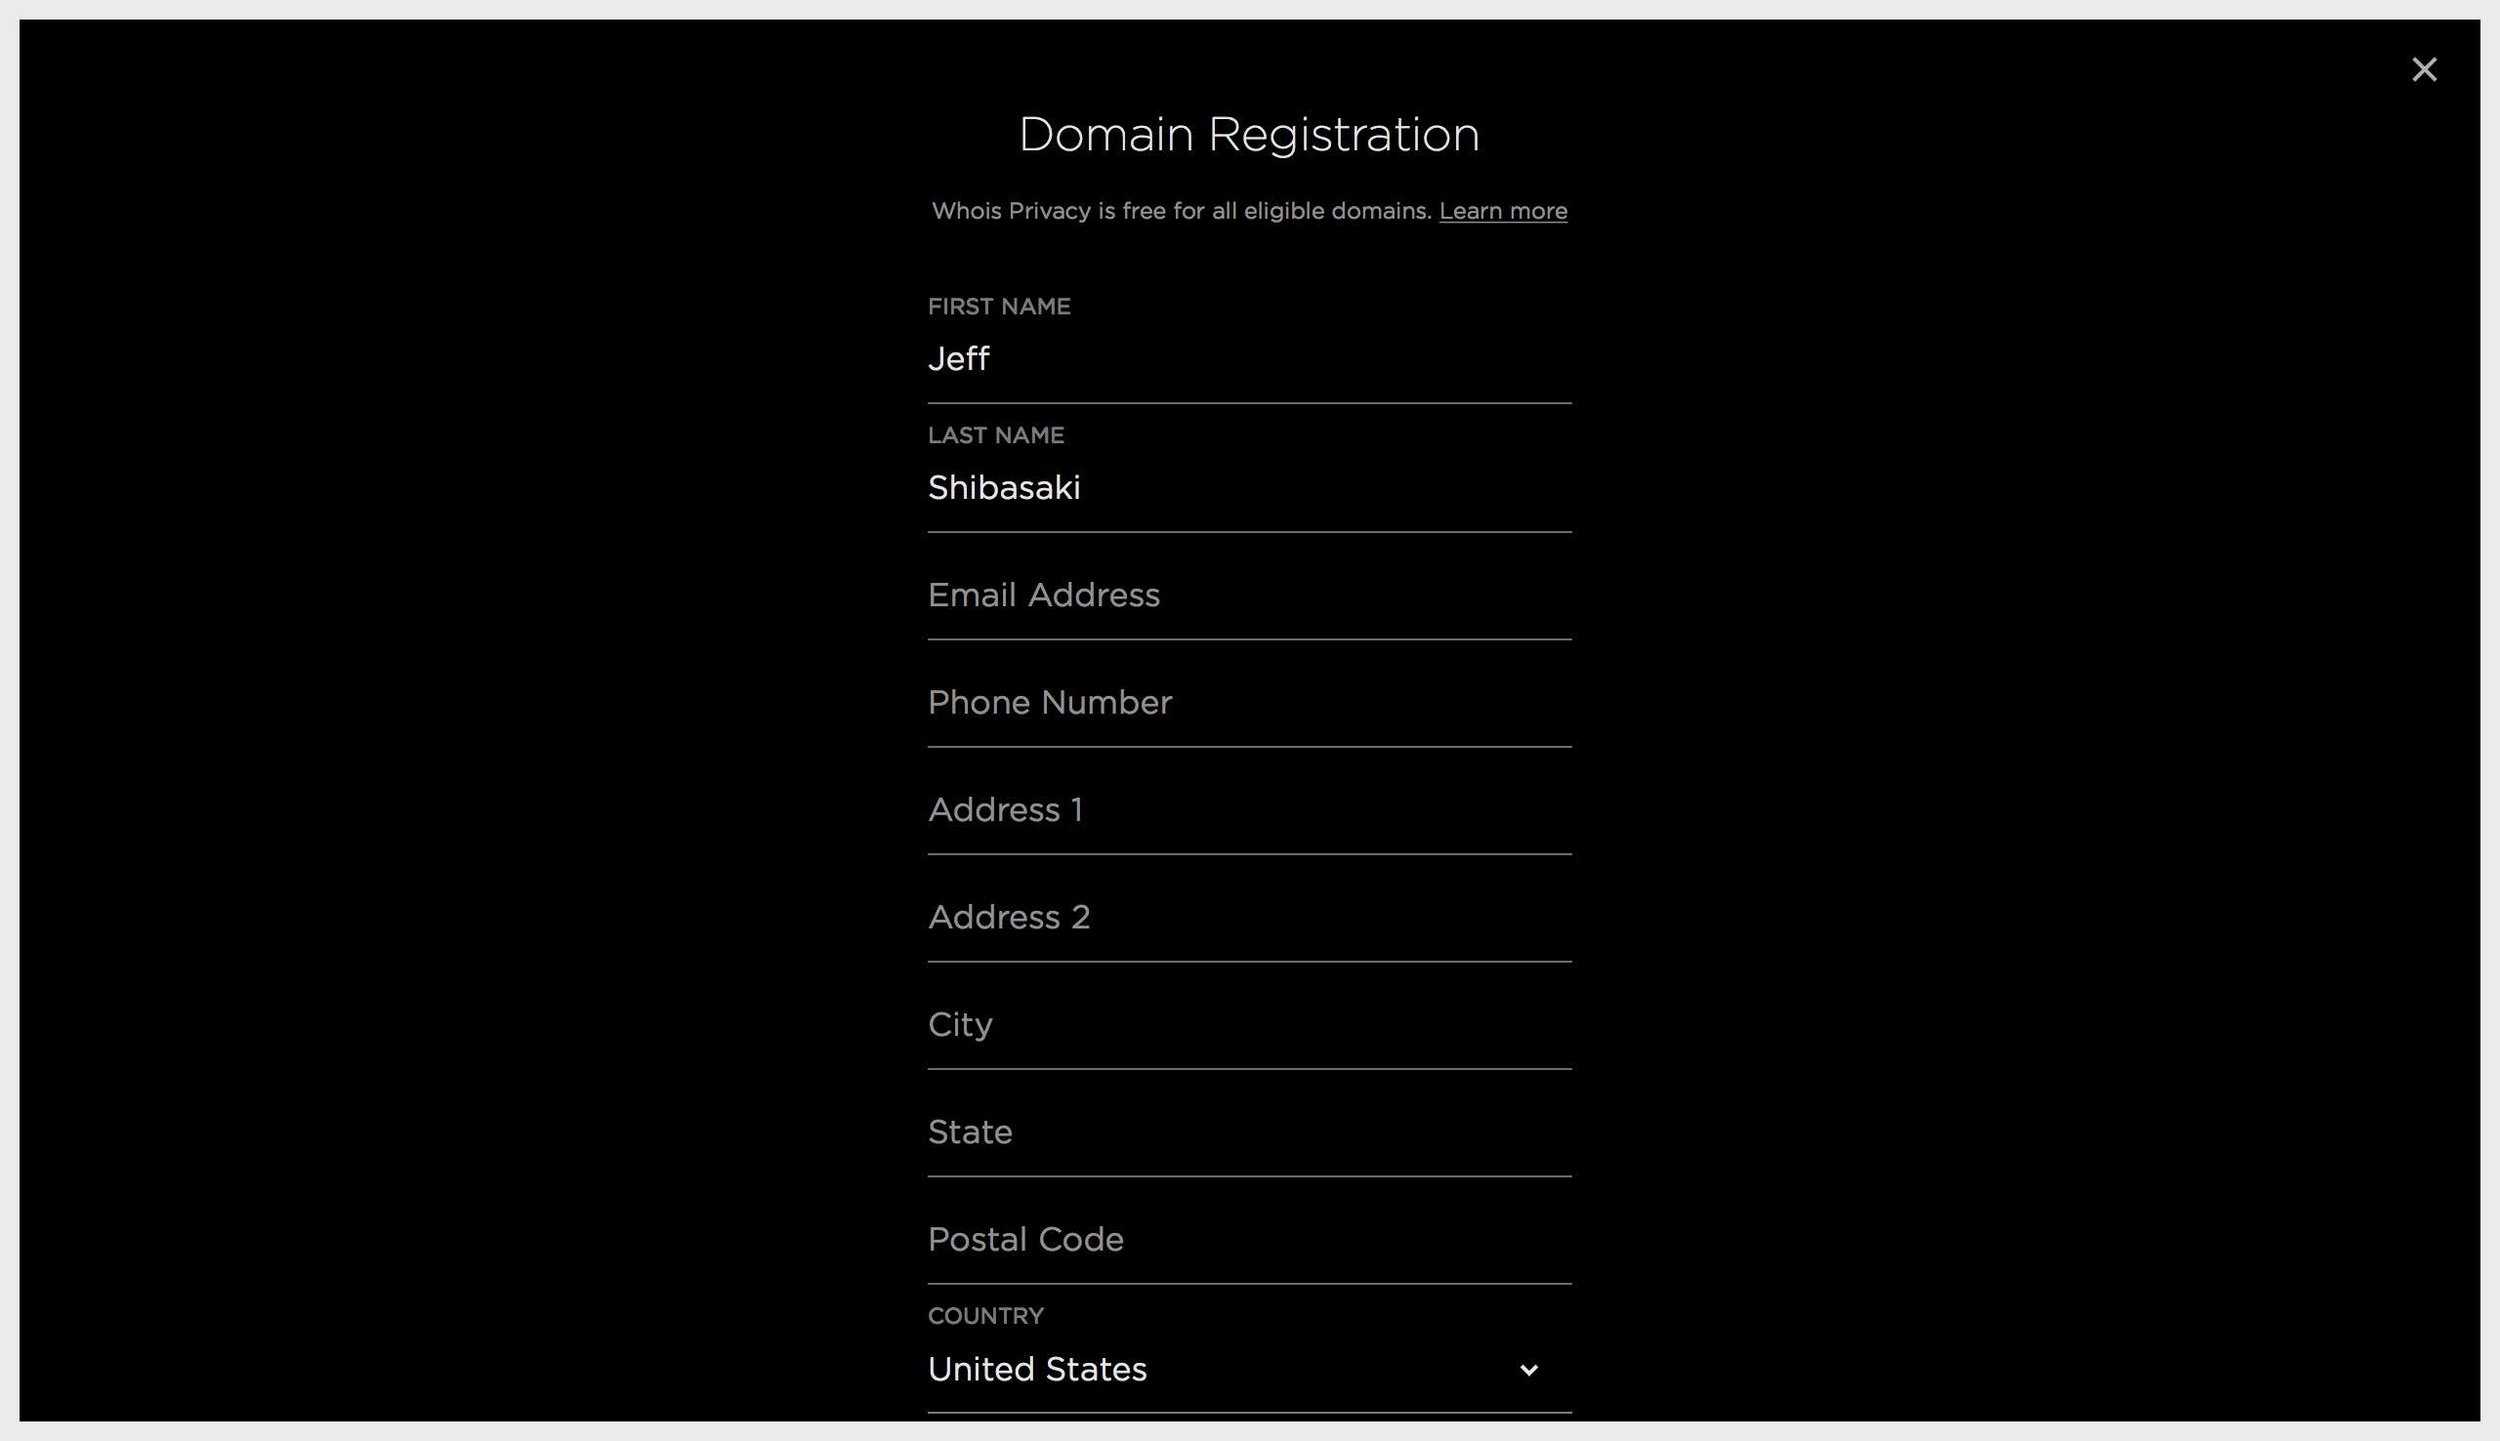 Squarespace Domain's webpage – adding Whois Privacy information